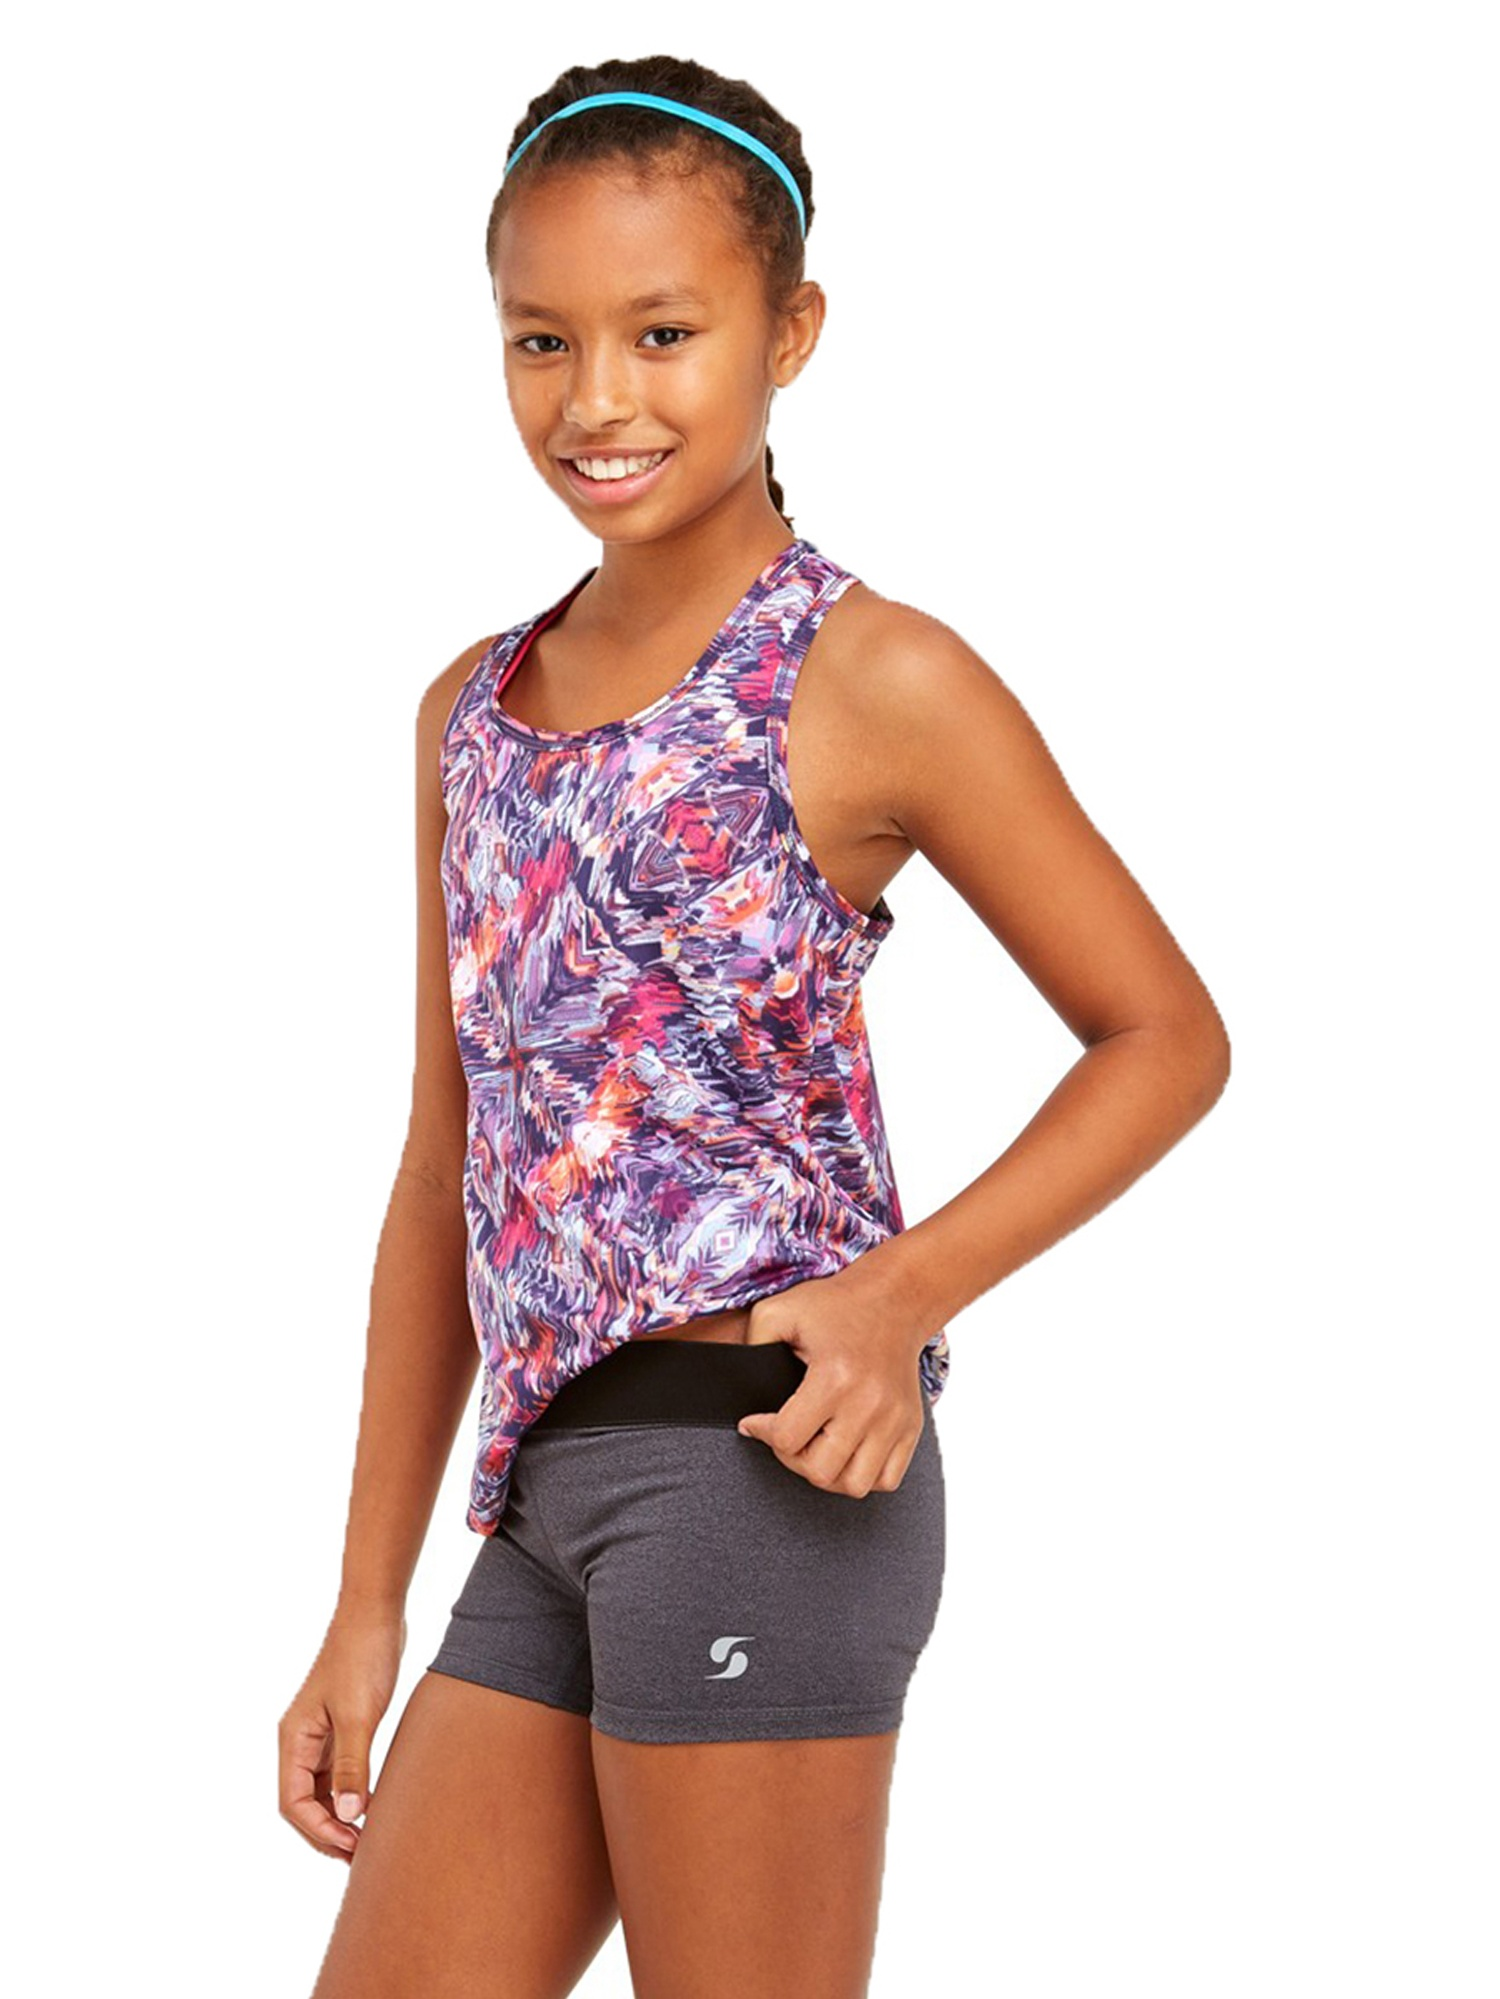 Summer Daisy X-Large Soffe Girls Big Dri Short